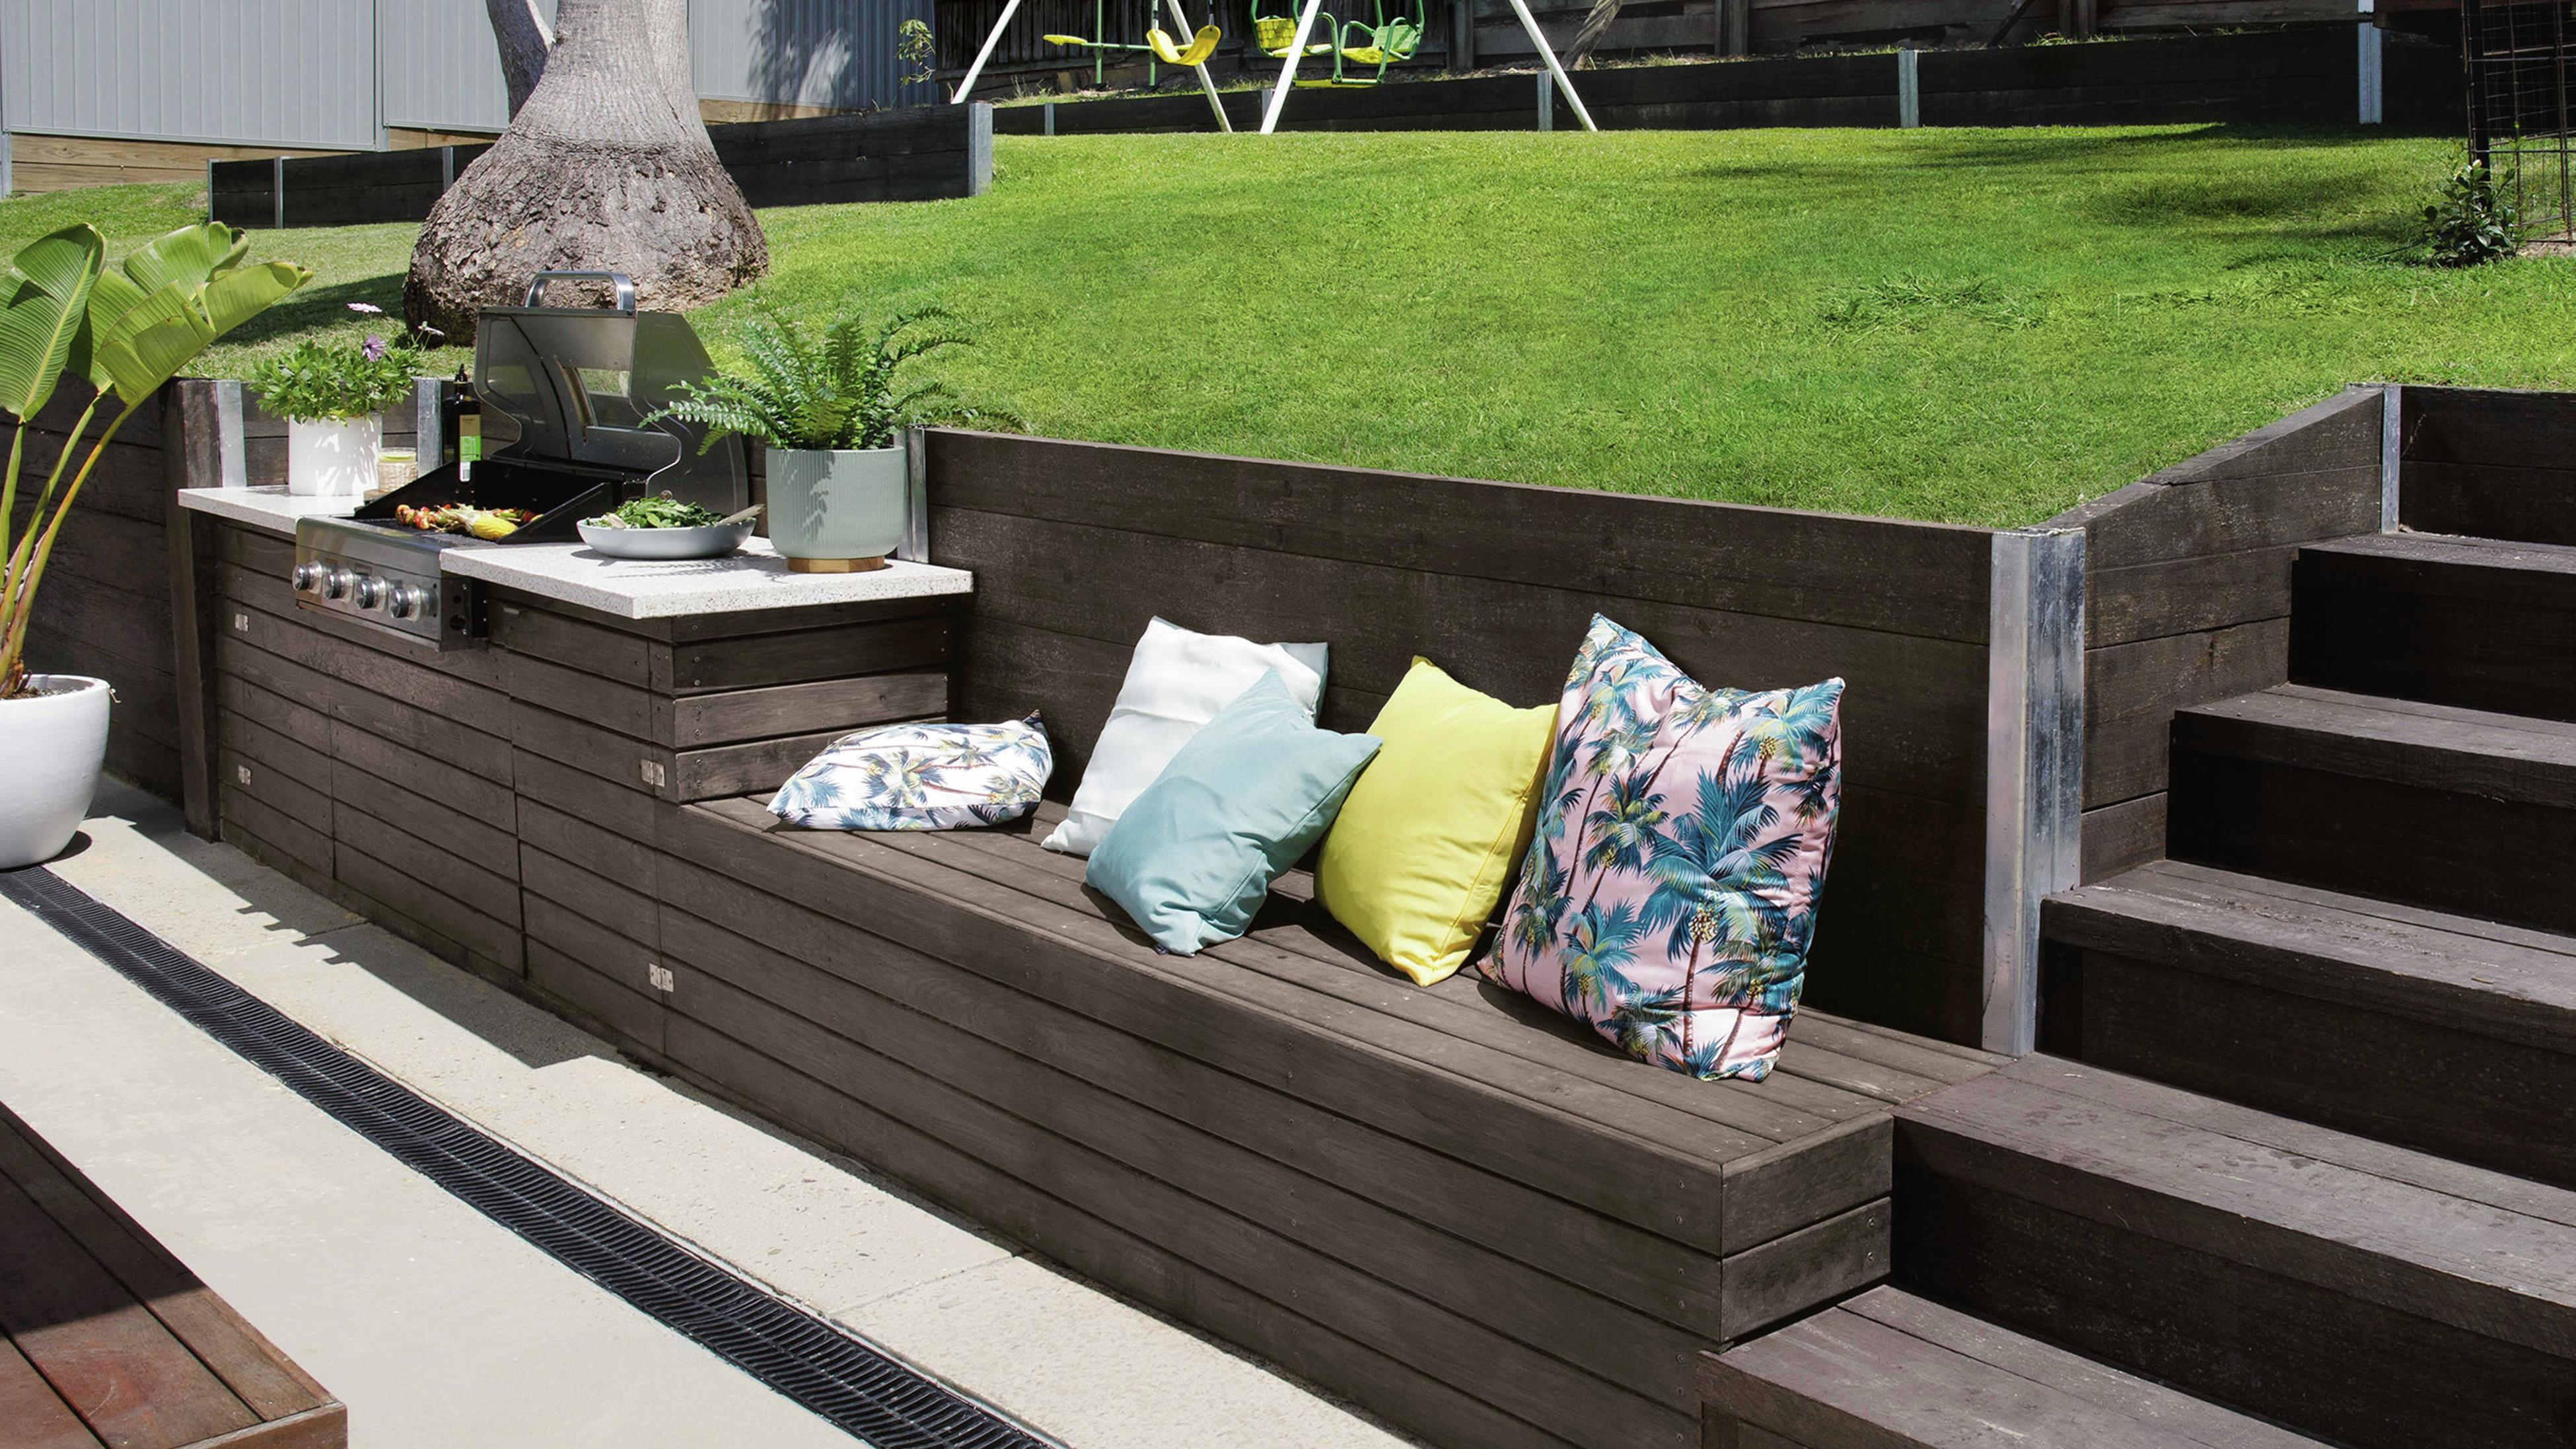 Seating in an outdoor setting cut out of lawn slope with throw cushions